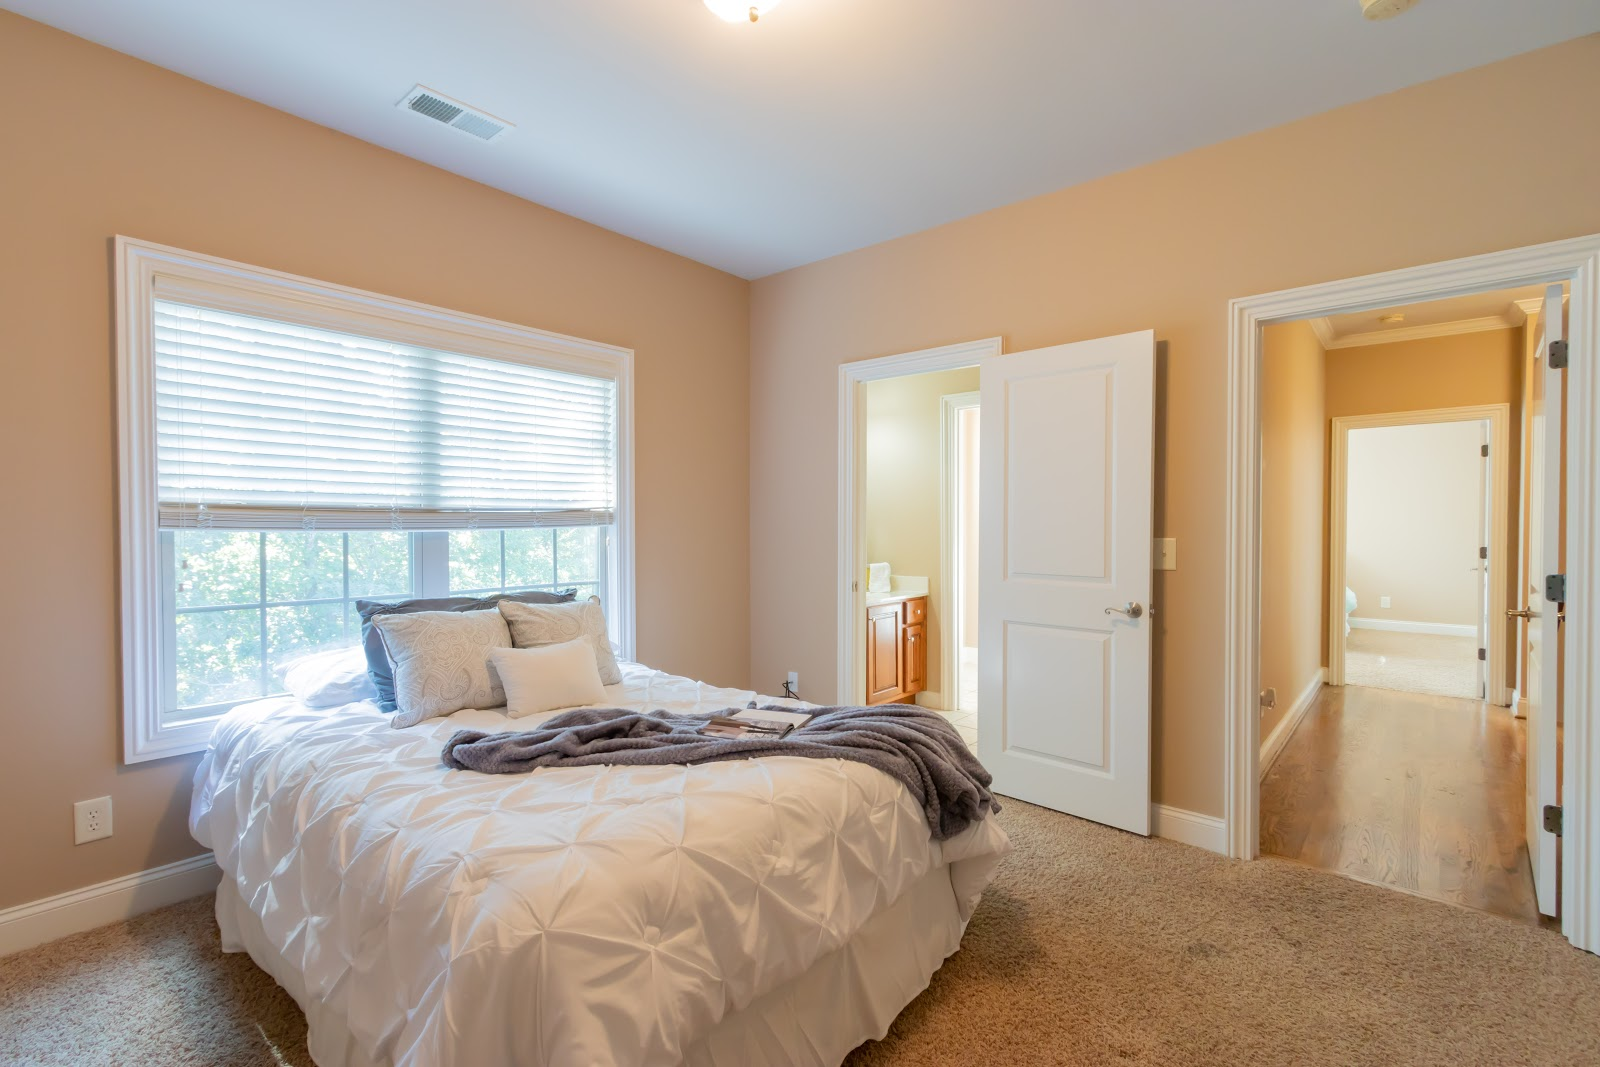 Stage a room by keeping it simple. You want to show buyers how much space there is.